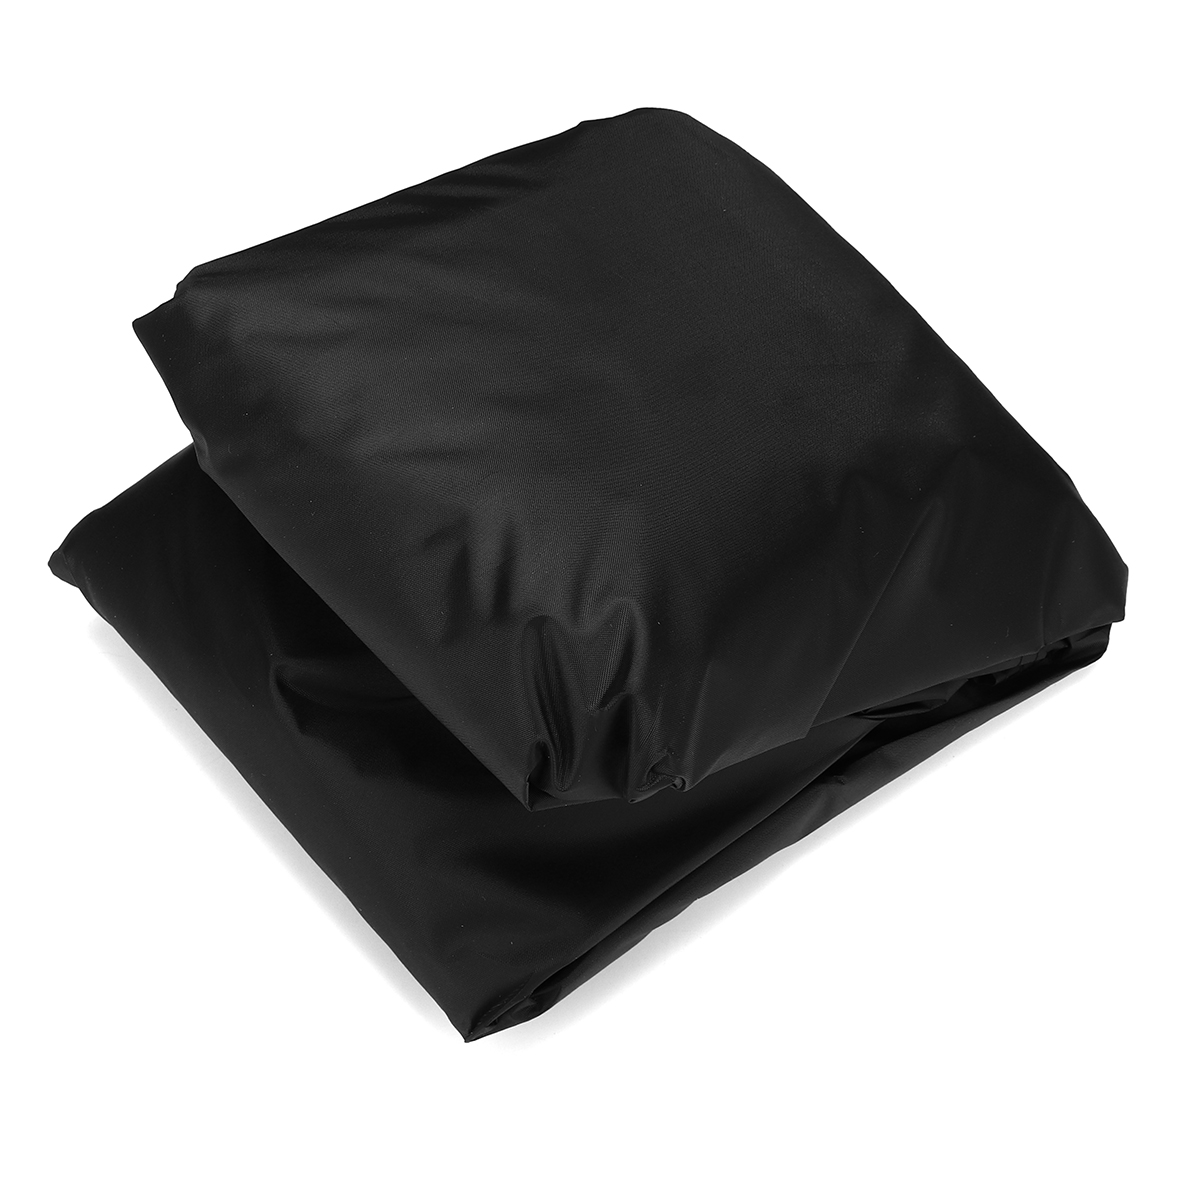 Motorcycle Cover Outdoor Rain Dust Snow UV Protector 3XL 4XL For BMW R1150GS R1200GS R1200RT